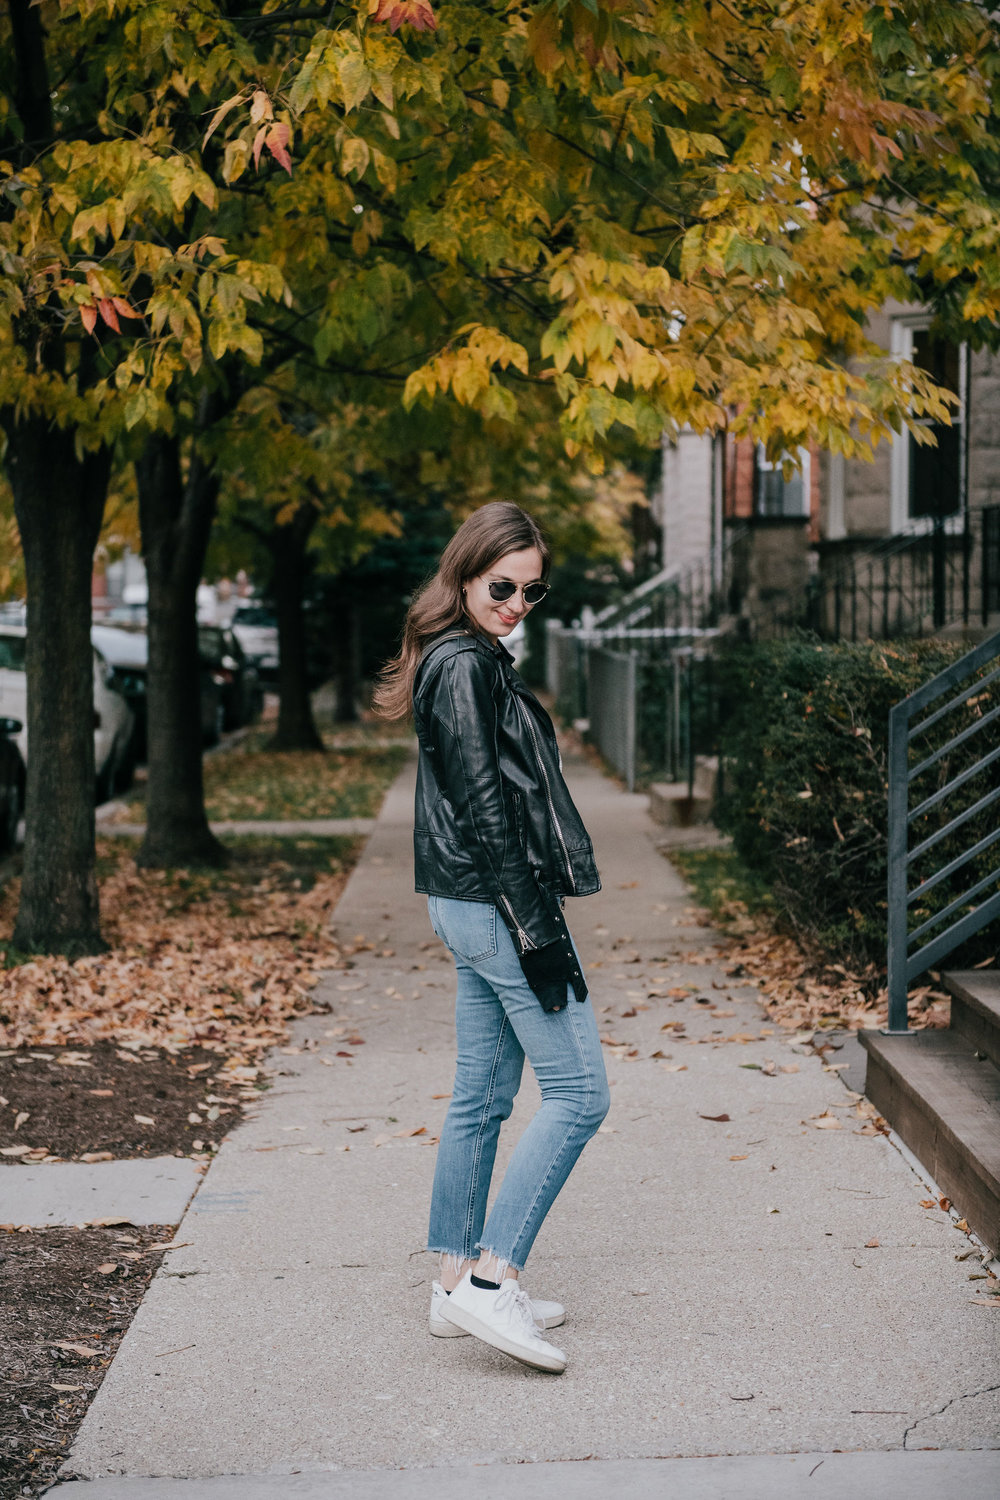 Sunday outfit idea - A Week Of Ethical Outfits With Heart With Carly Gerber From Hippie + Heart on The Good Trade